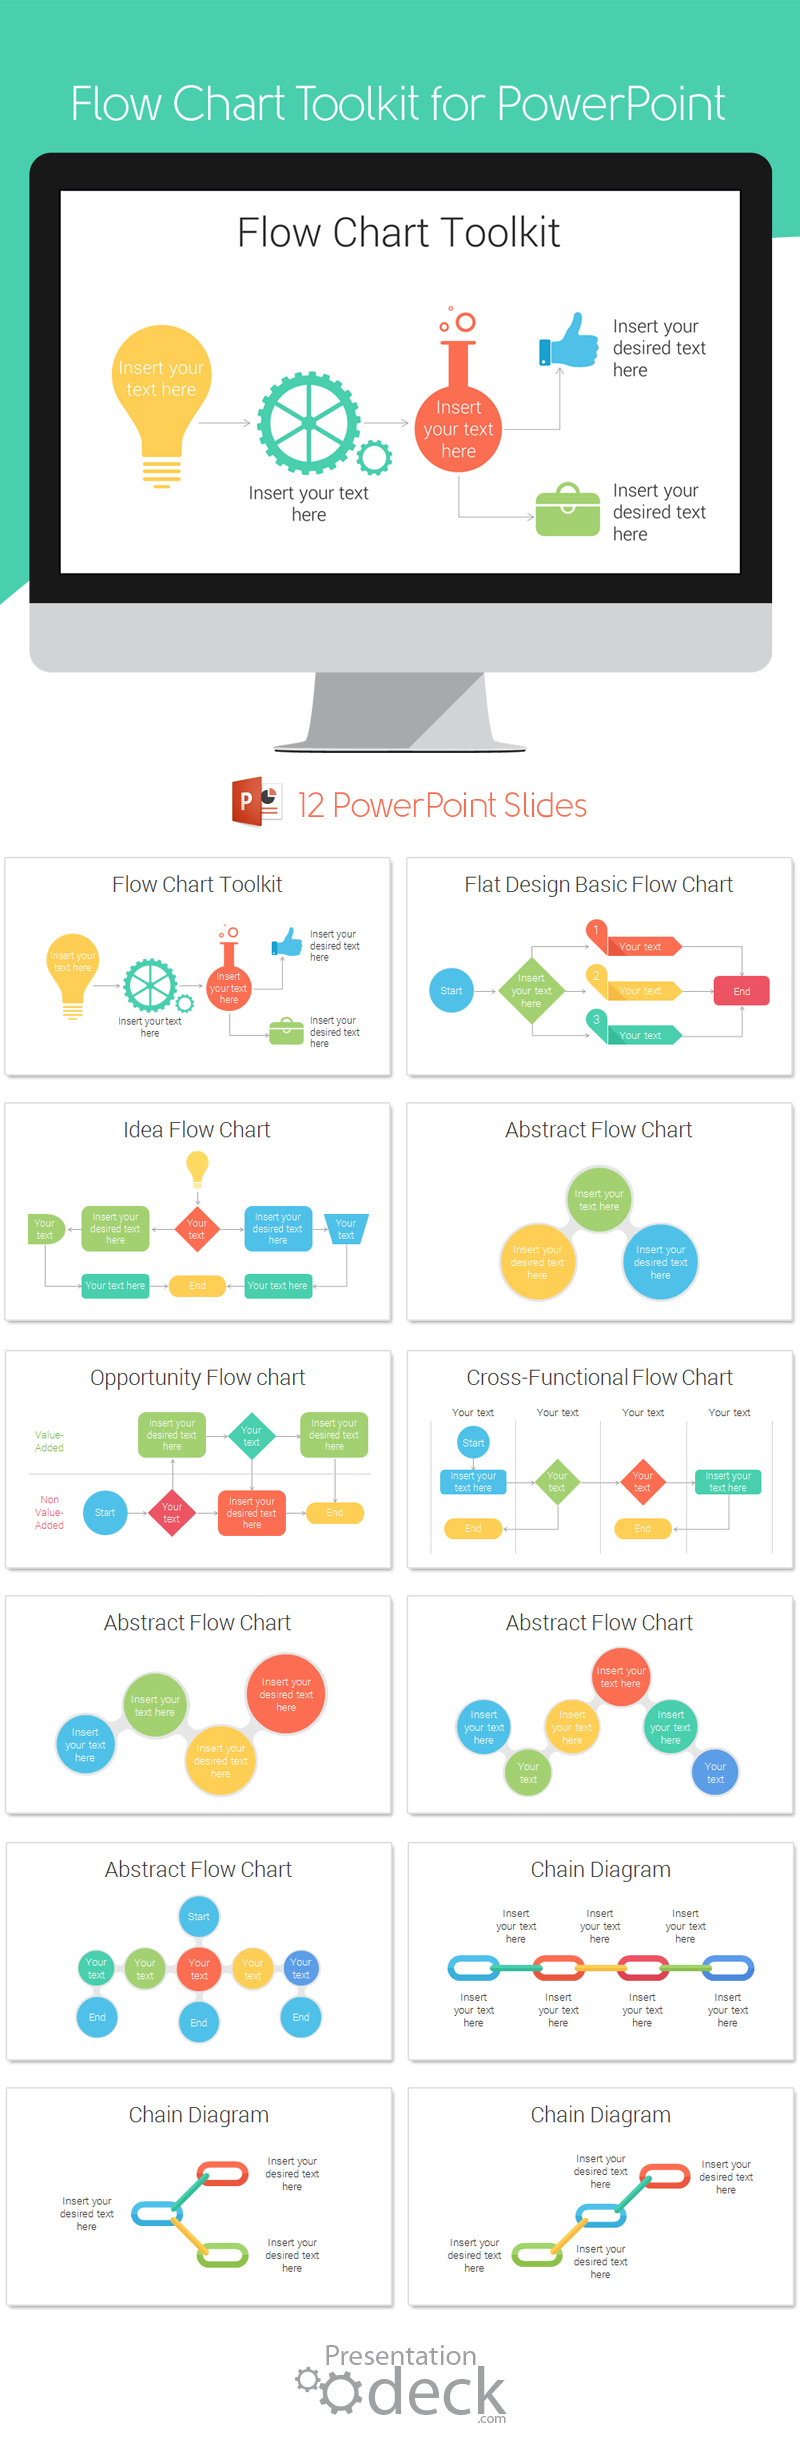 medium resolution of flow chart toolkit powerpoint template with 12 pre designed slides with colorful infographics